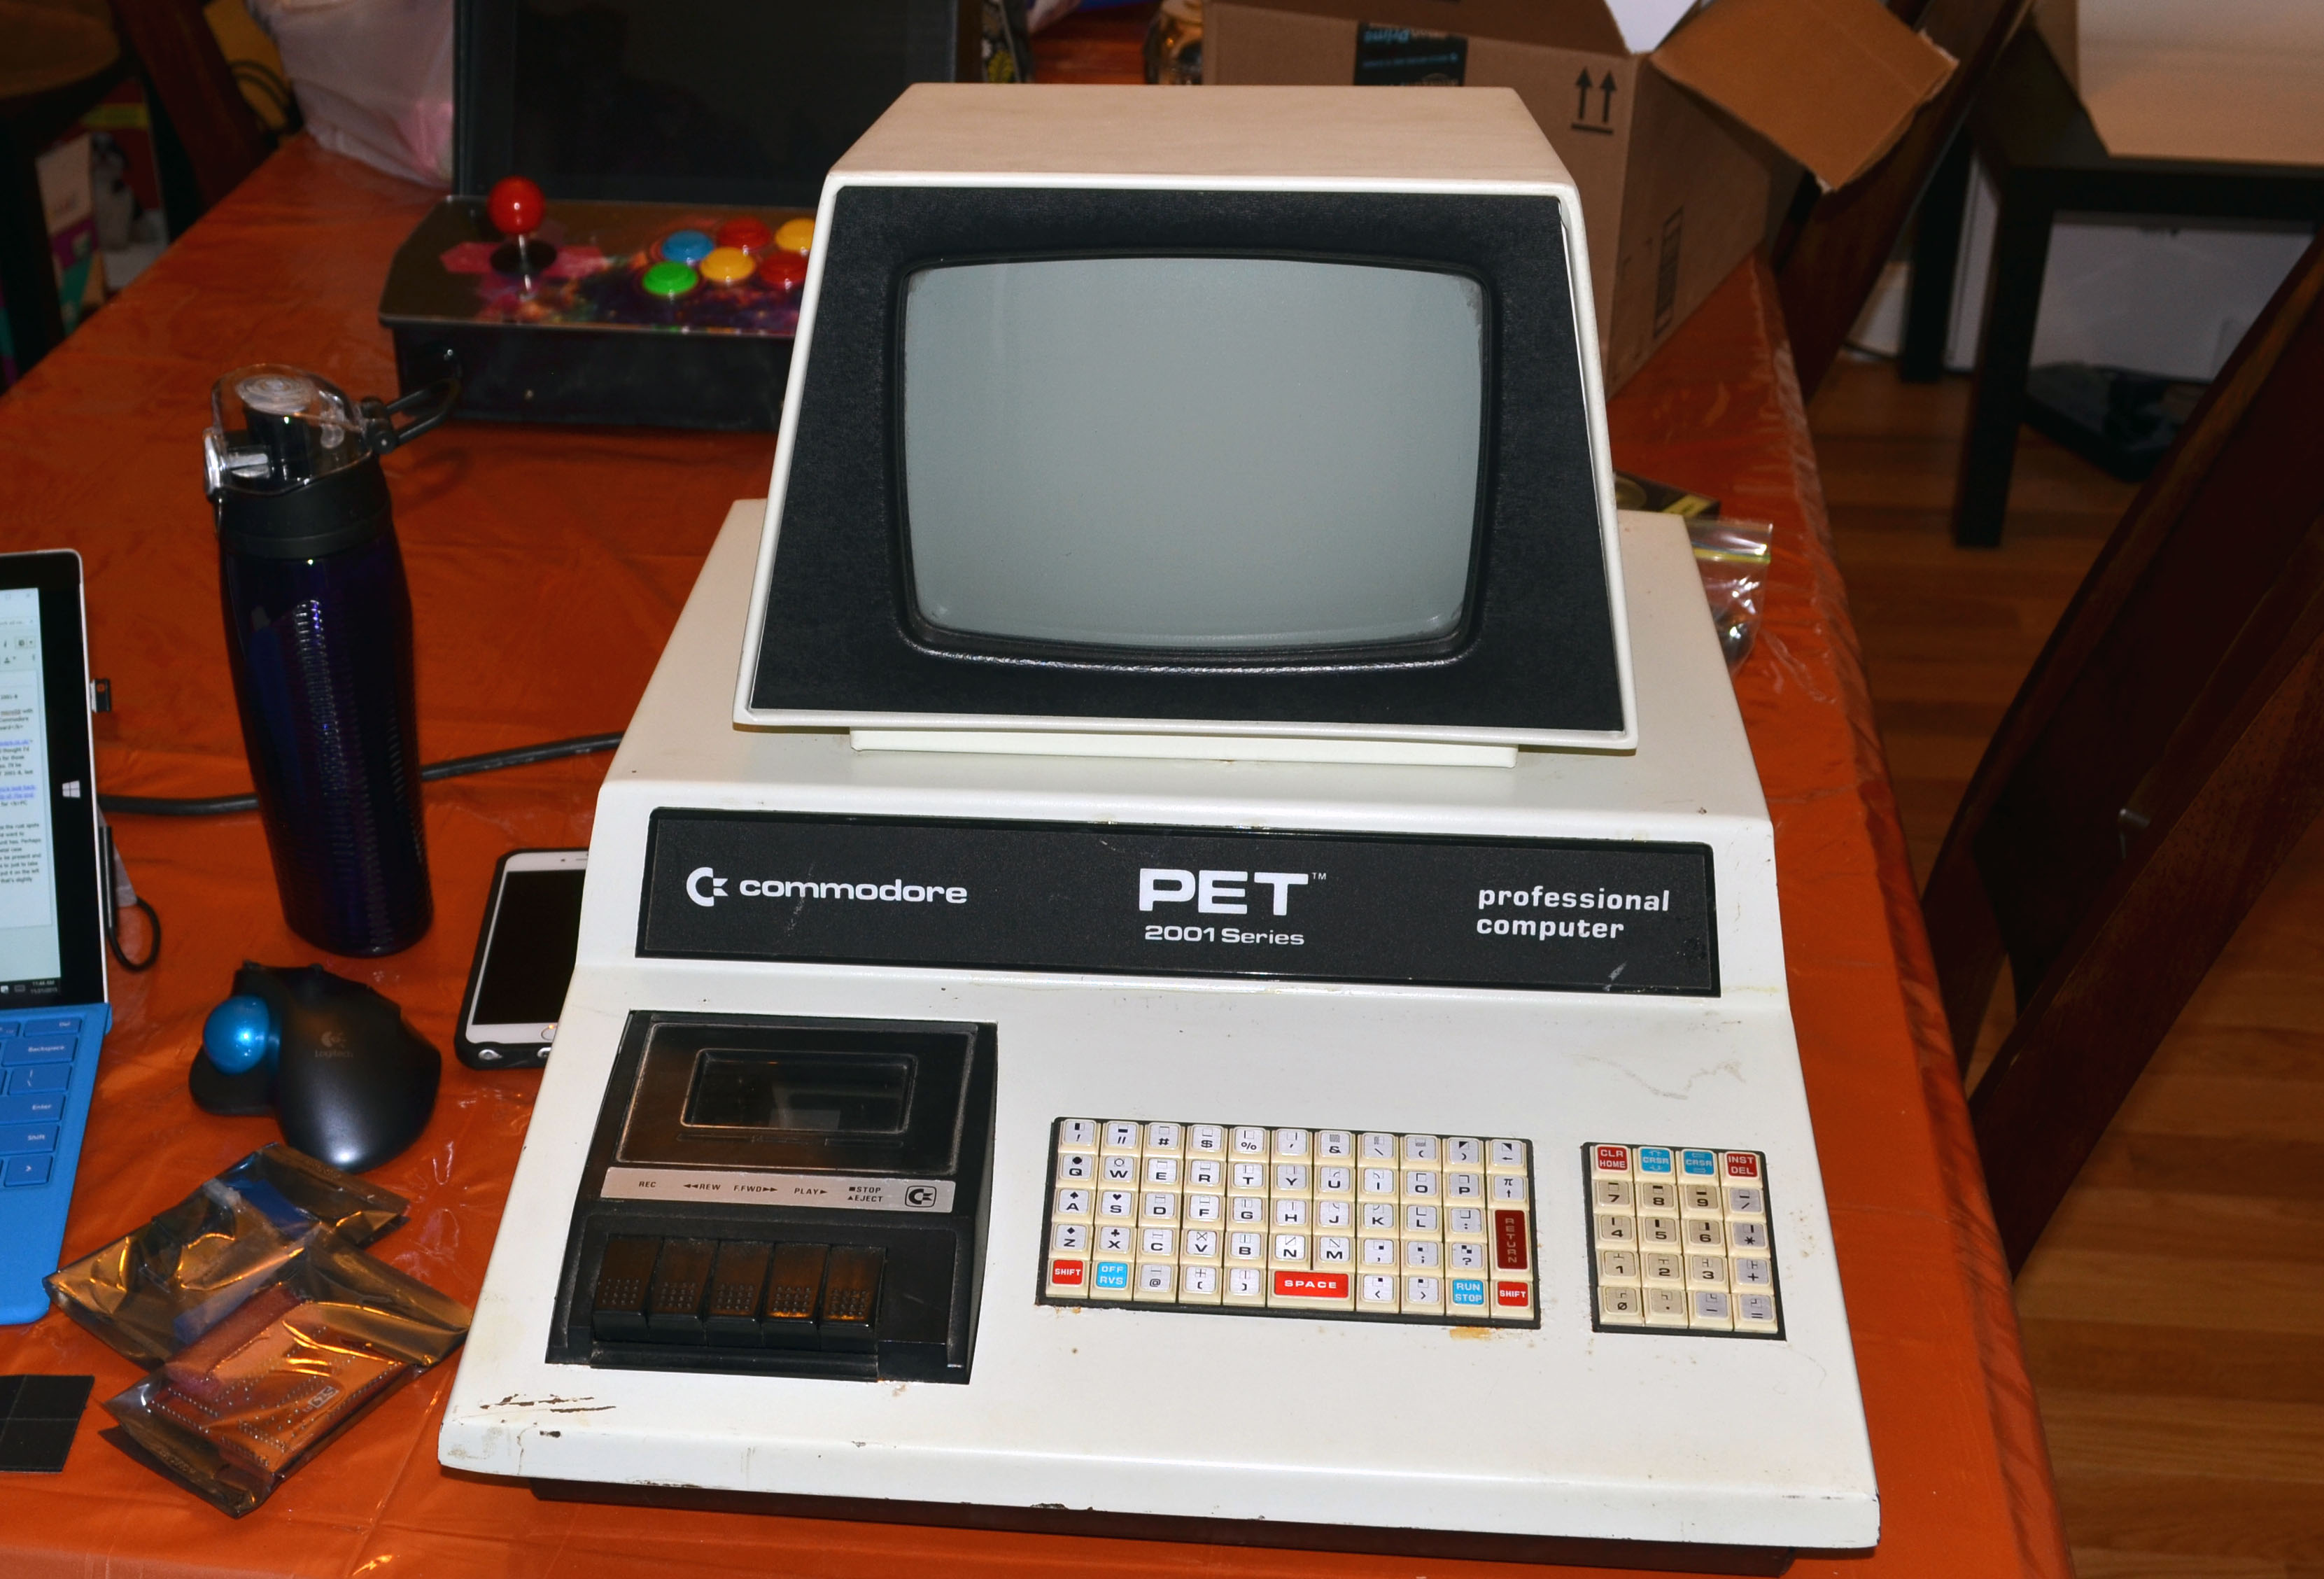 Upgrading the Commodore PET 2001-8: Part 1 - Armchair Arcade